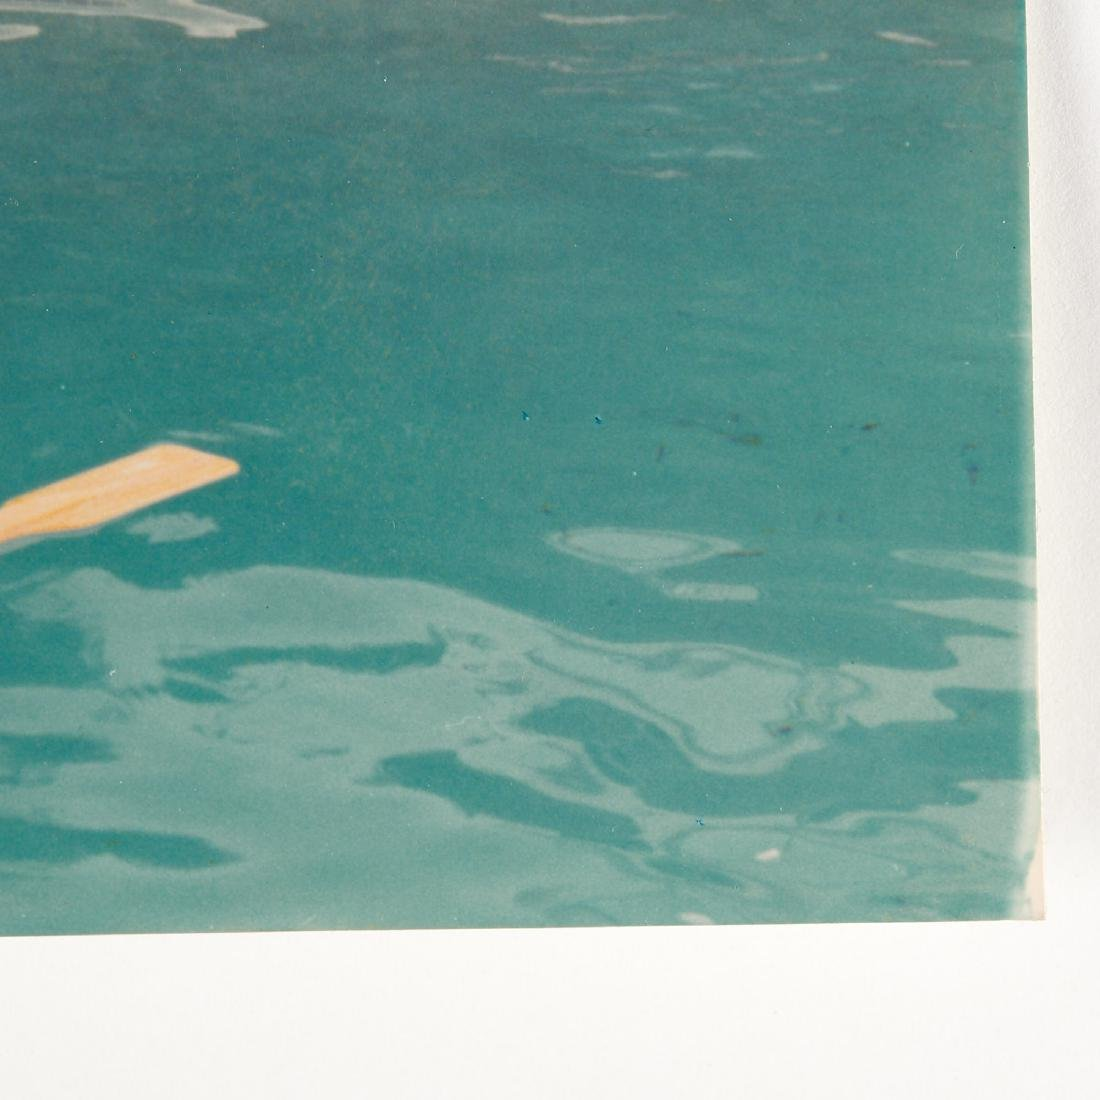 David Hockney, photograph - 3